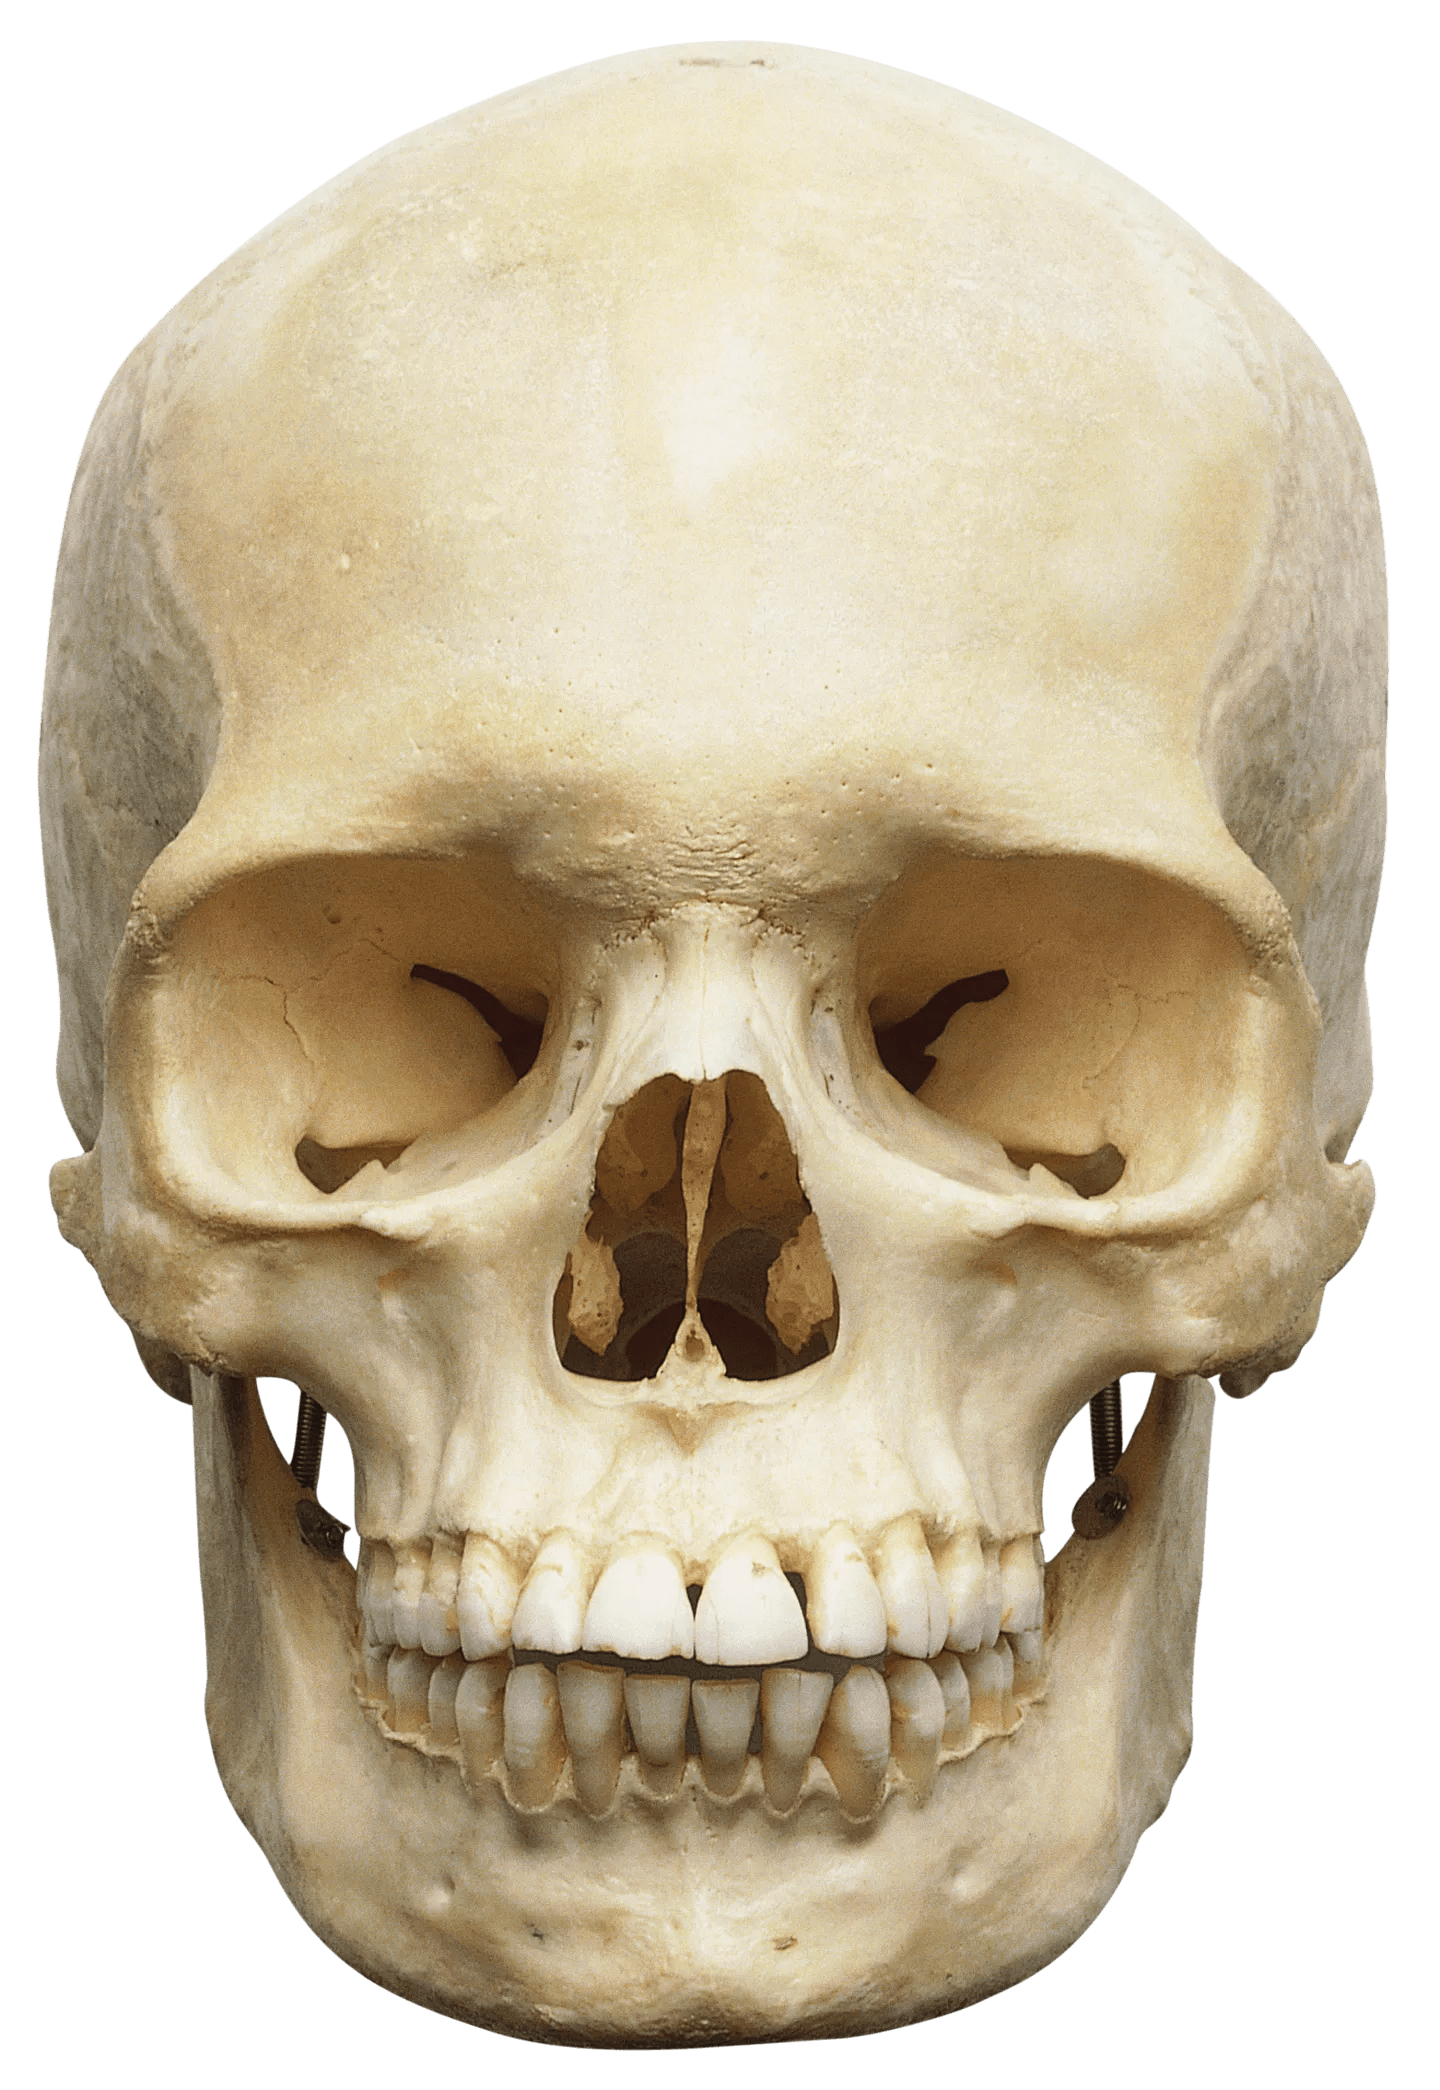 Human Skull Human Skull Anatomy Bones In Human Skull Dk Find Out